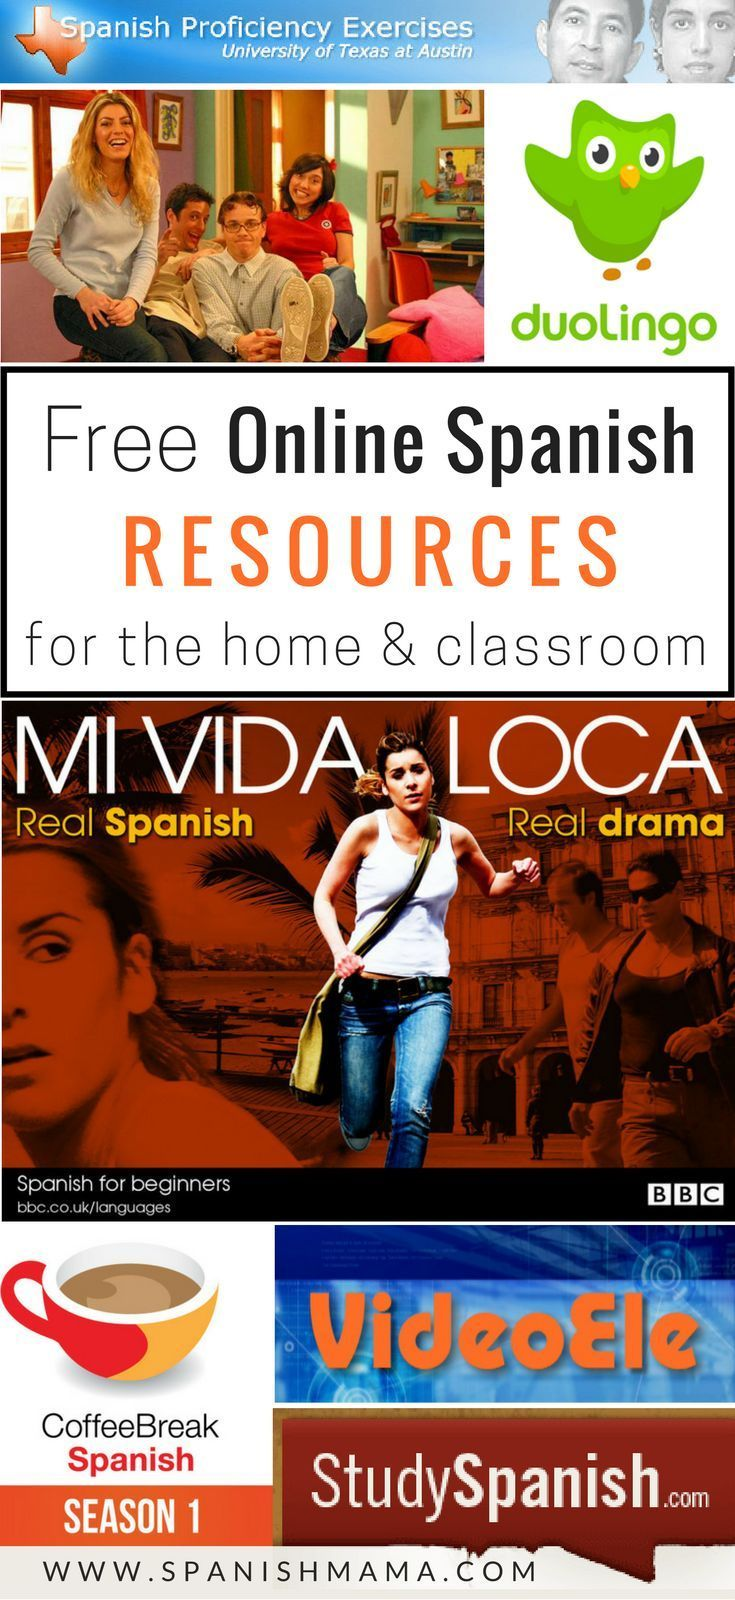 OnlineFreeSpanish.com - Study Spanish for free with our ...